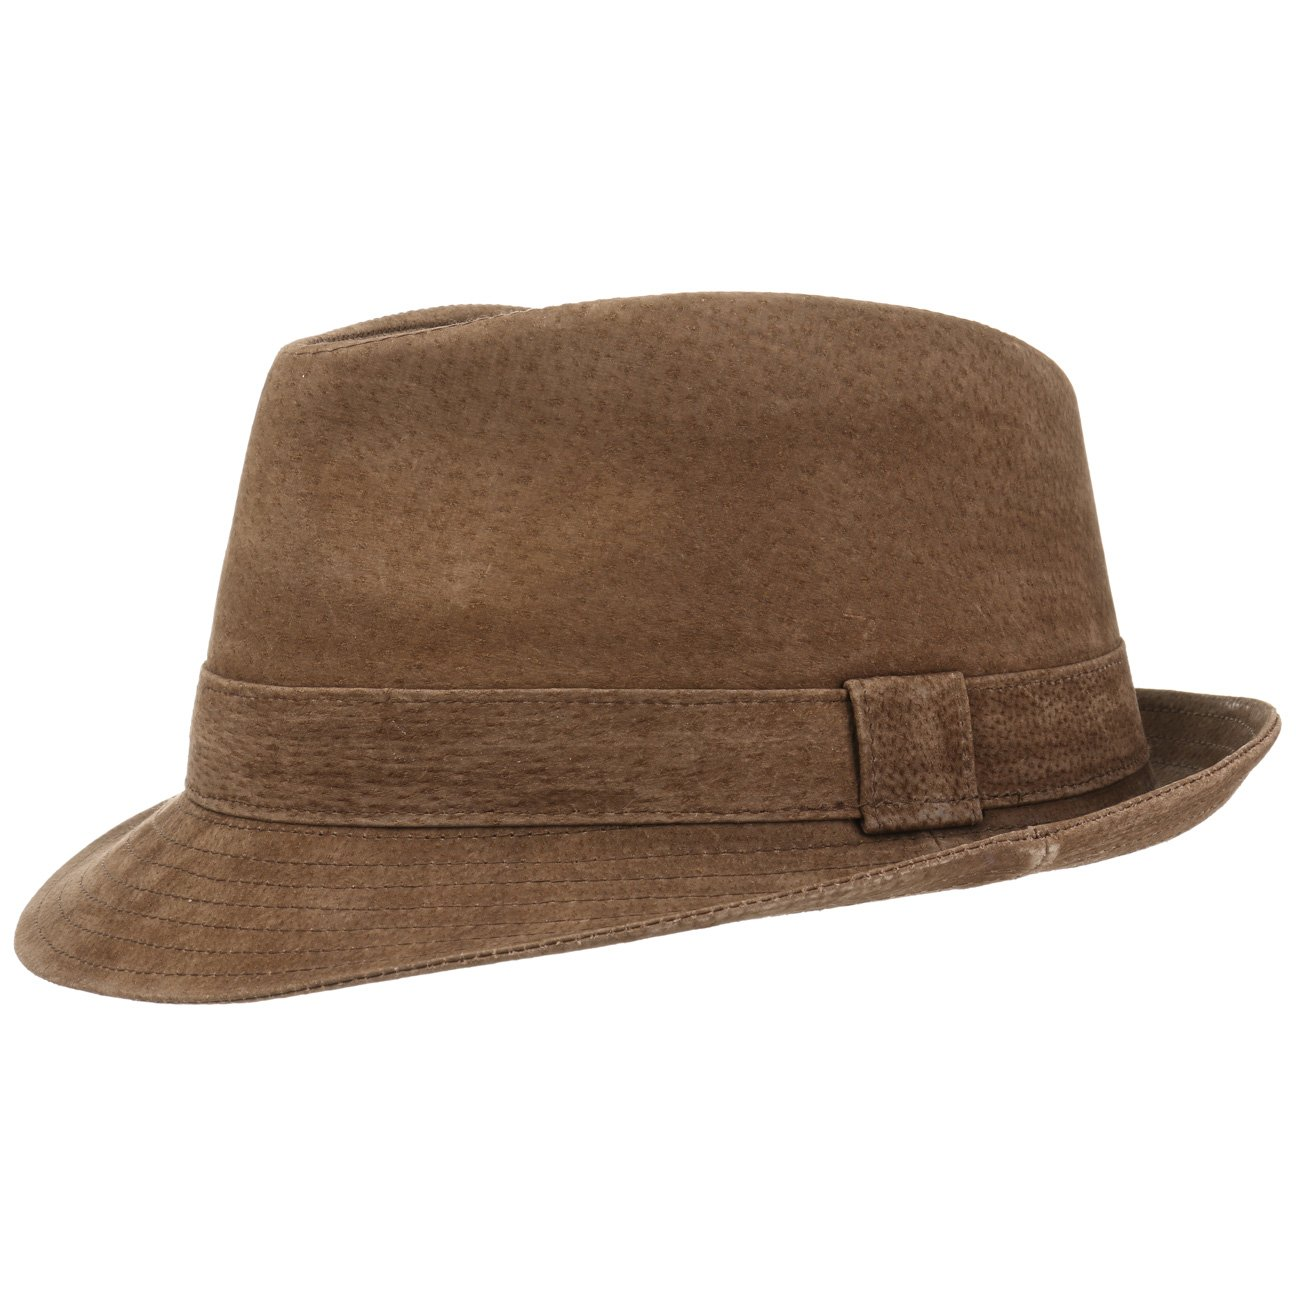 1ed5b8ab393 Lipodo Smooth Trilby Leather Hat Fedora (M (57-58 cm) - Brown)   Amazon.co.uk  Clothing